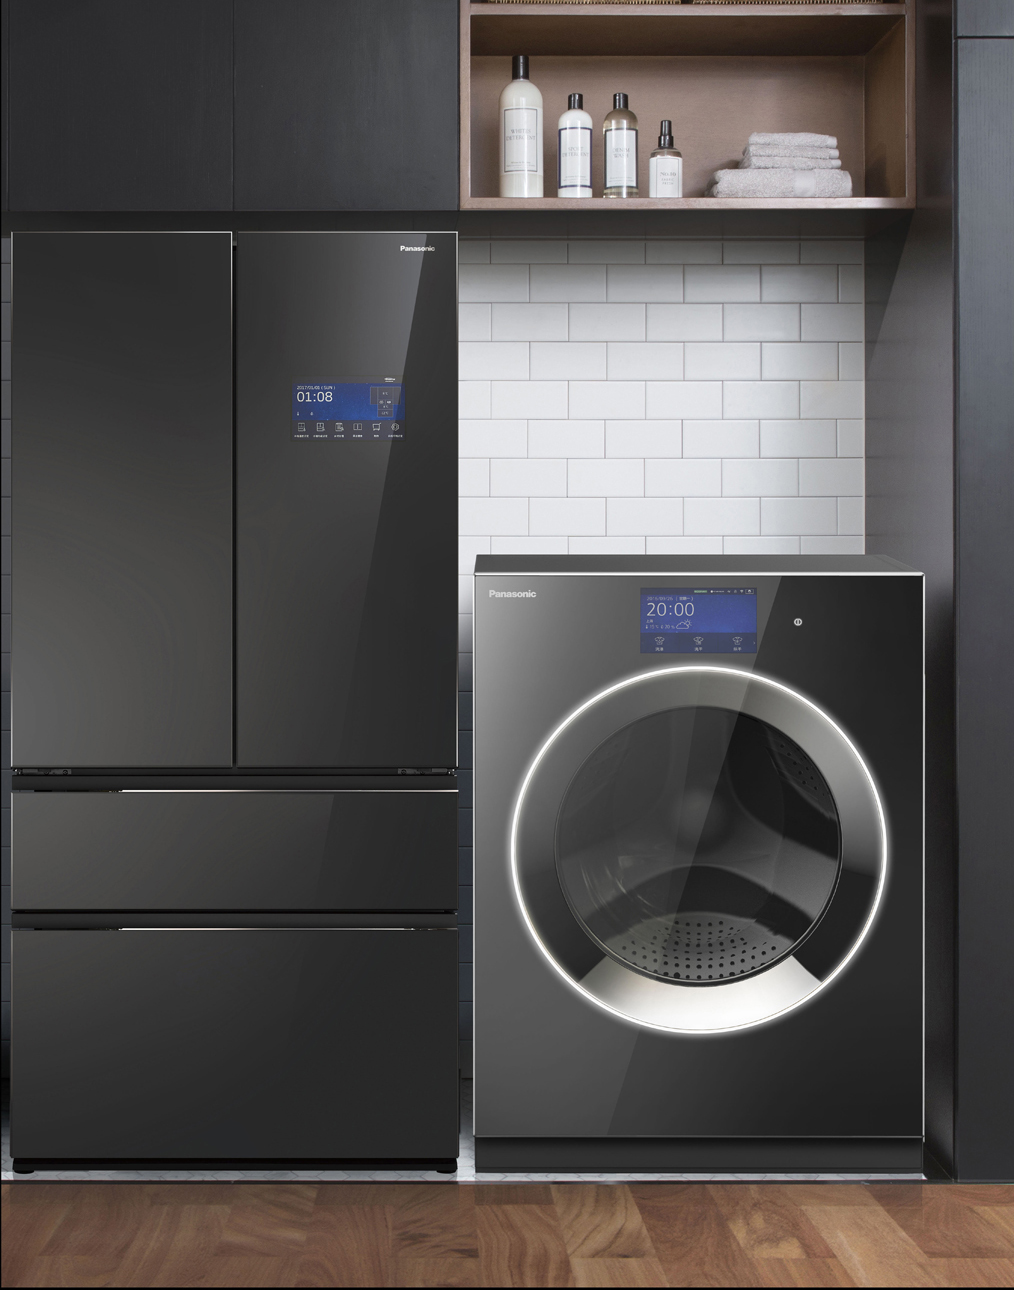 Panasonic Home Appliances AWE 2018